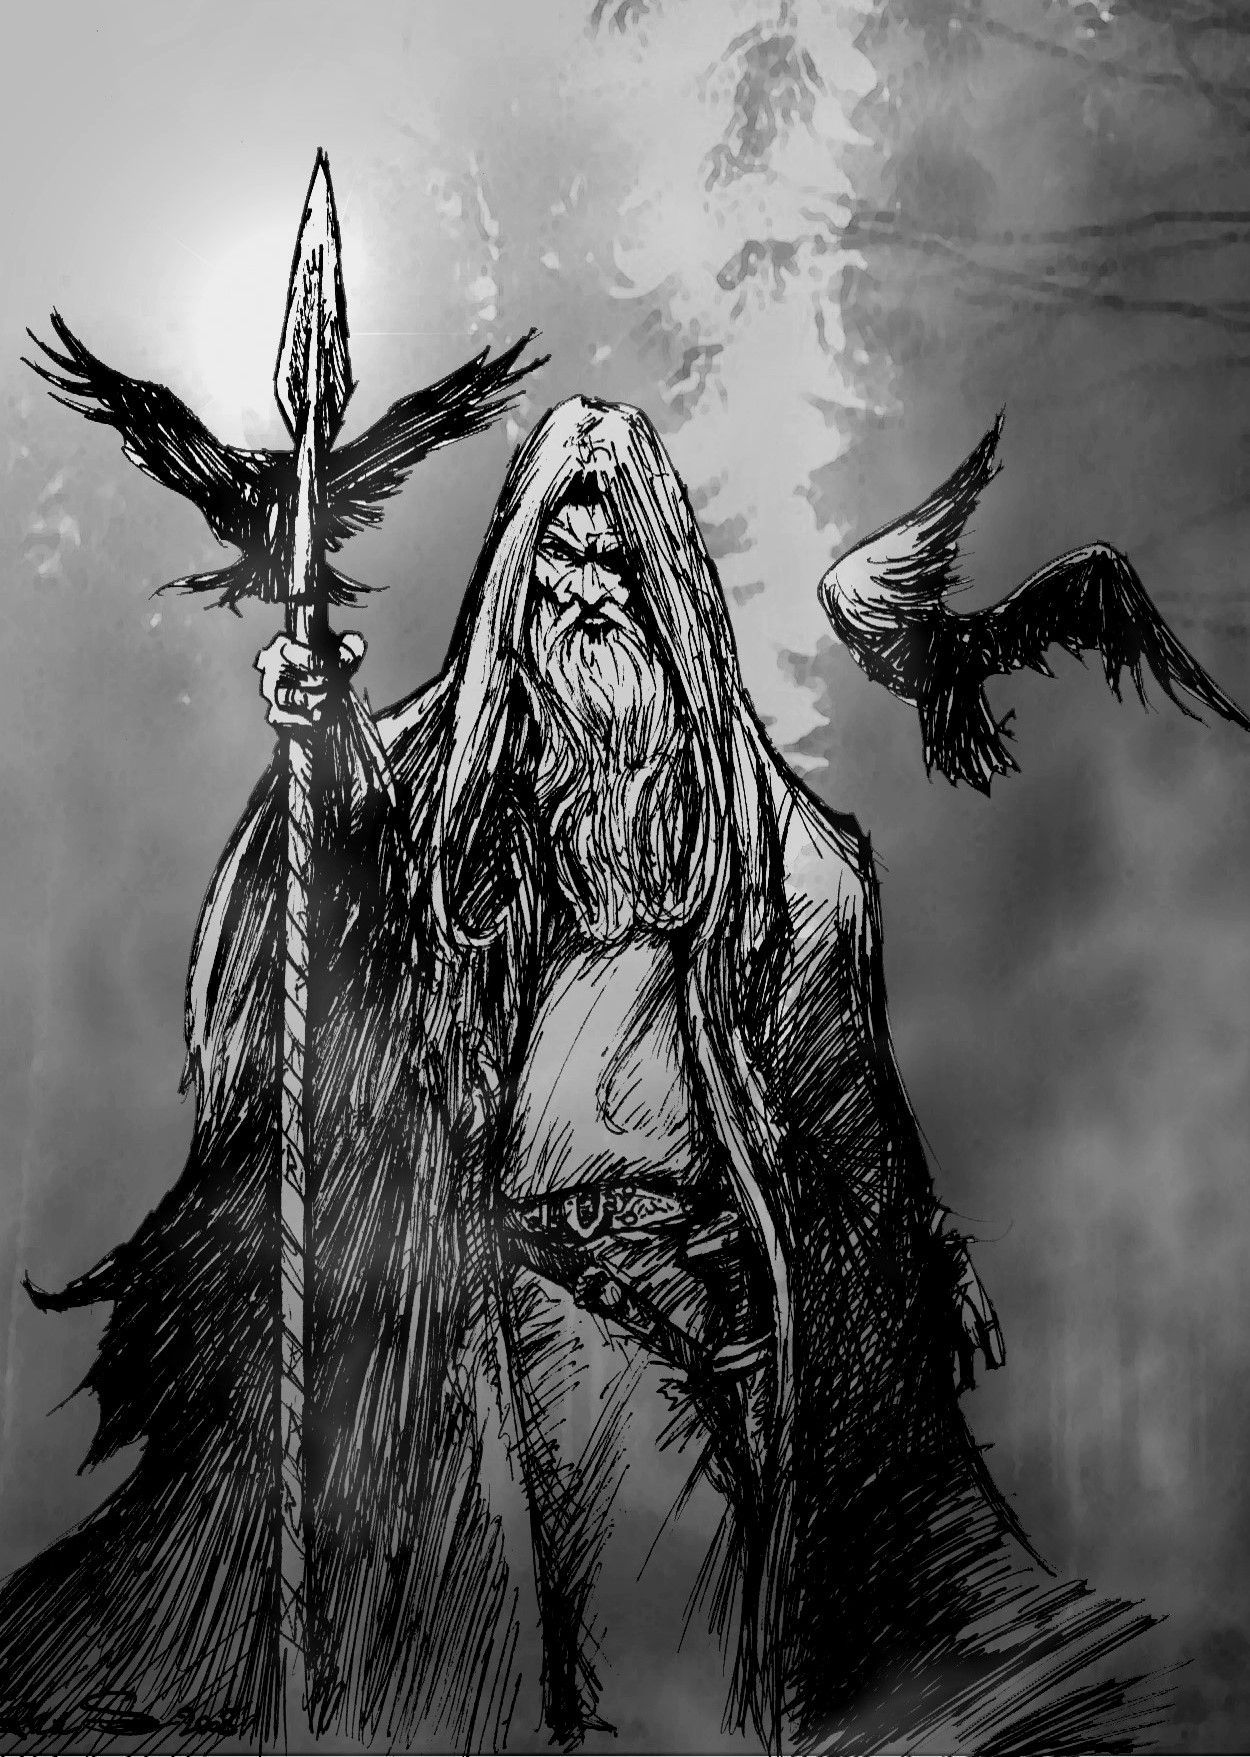 Odin Iphone Wallpapers Top Free Odin Iphone Backgrounds Wallpaperaccess Find the best hd iphone 12 wallpapers. odin iphone wallpapers top free odin